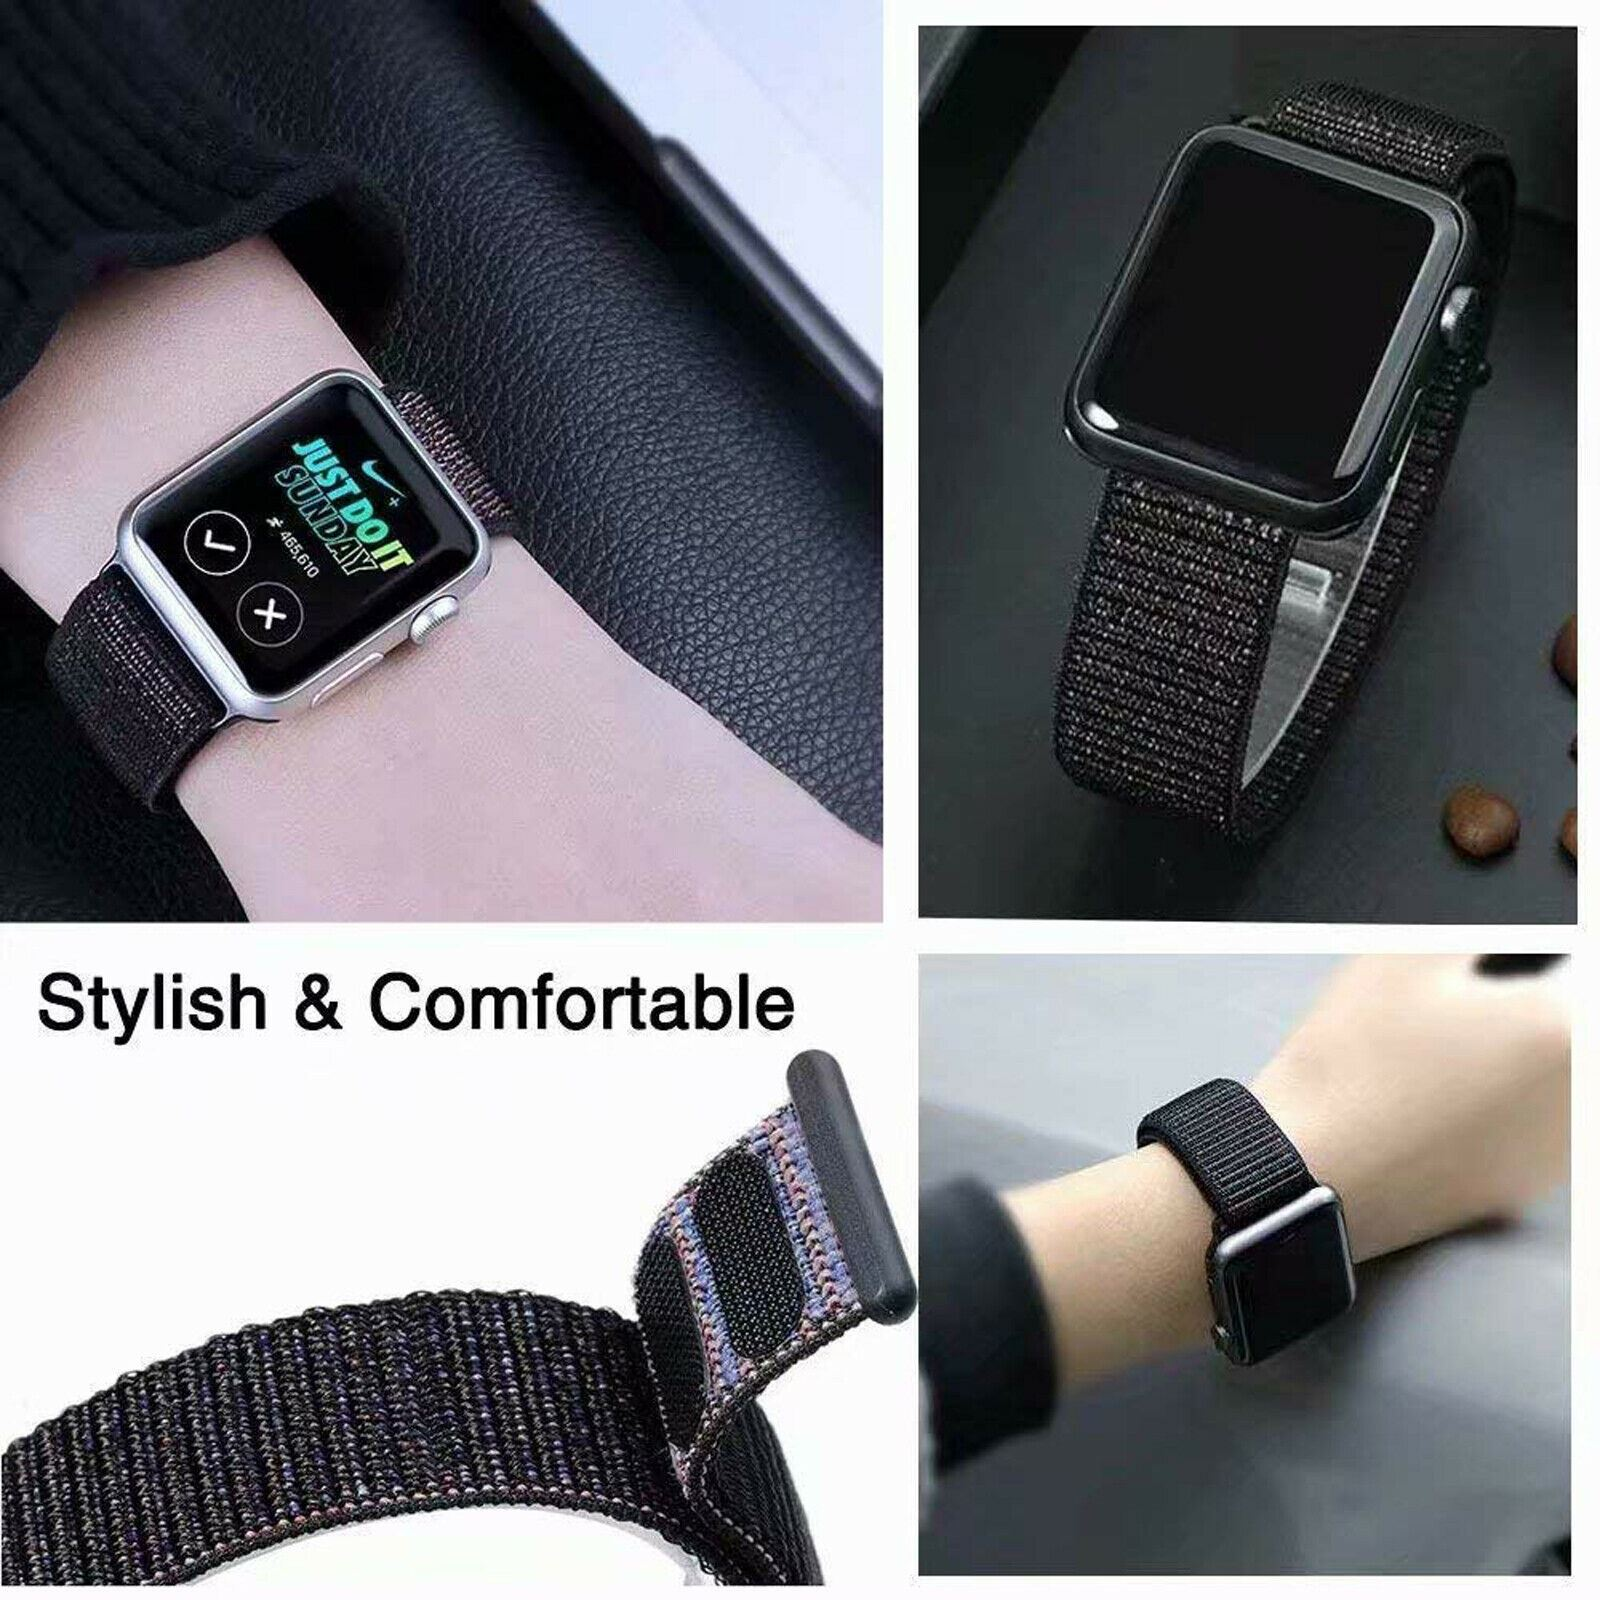 Band-Strap-For-Apple-Watch-Adjustable-Waterproof-Braided-Nylon-Material thumbnail 11